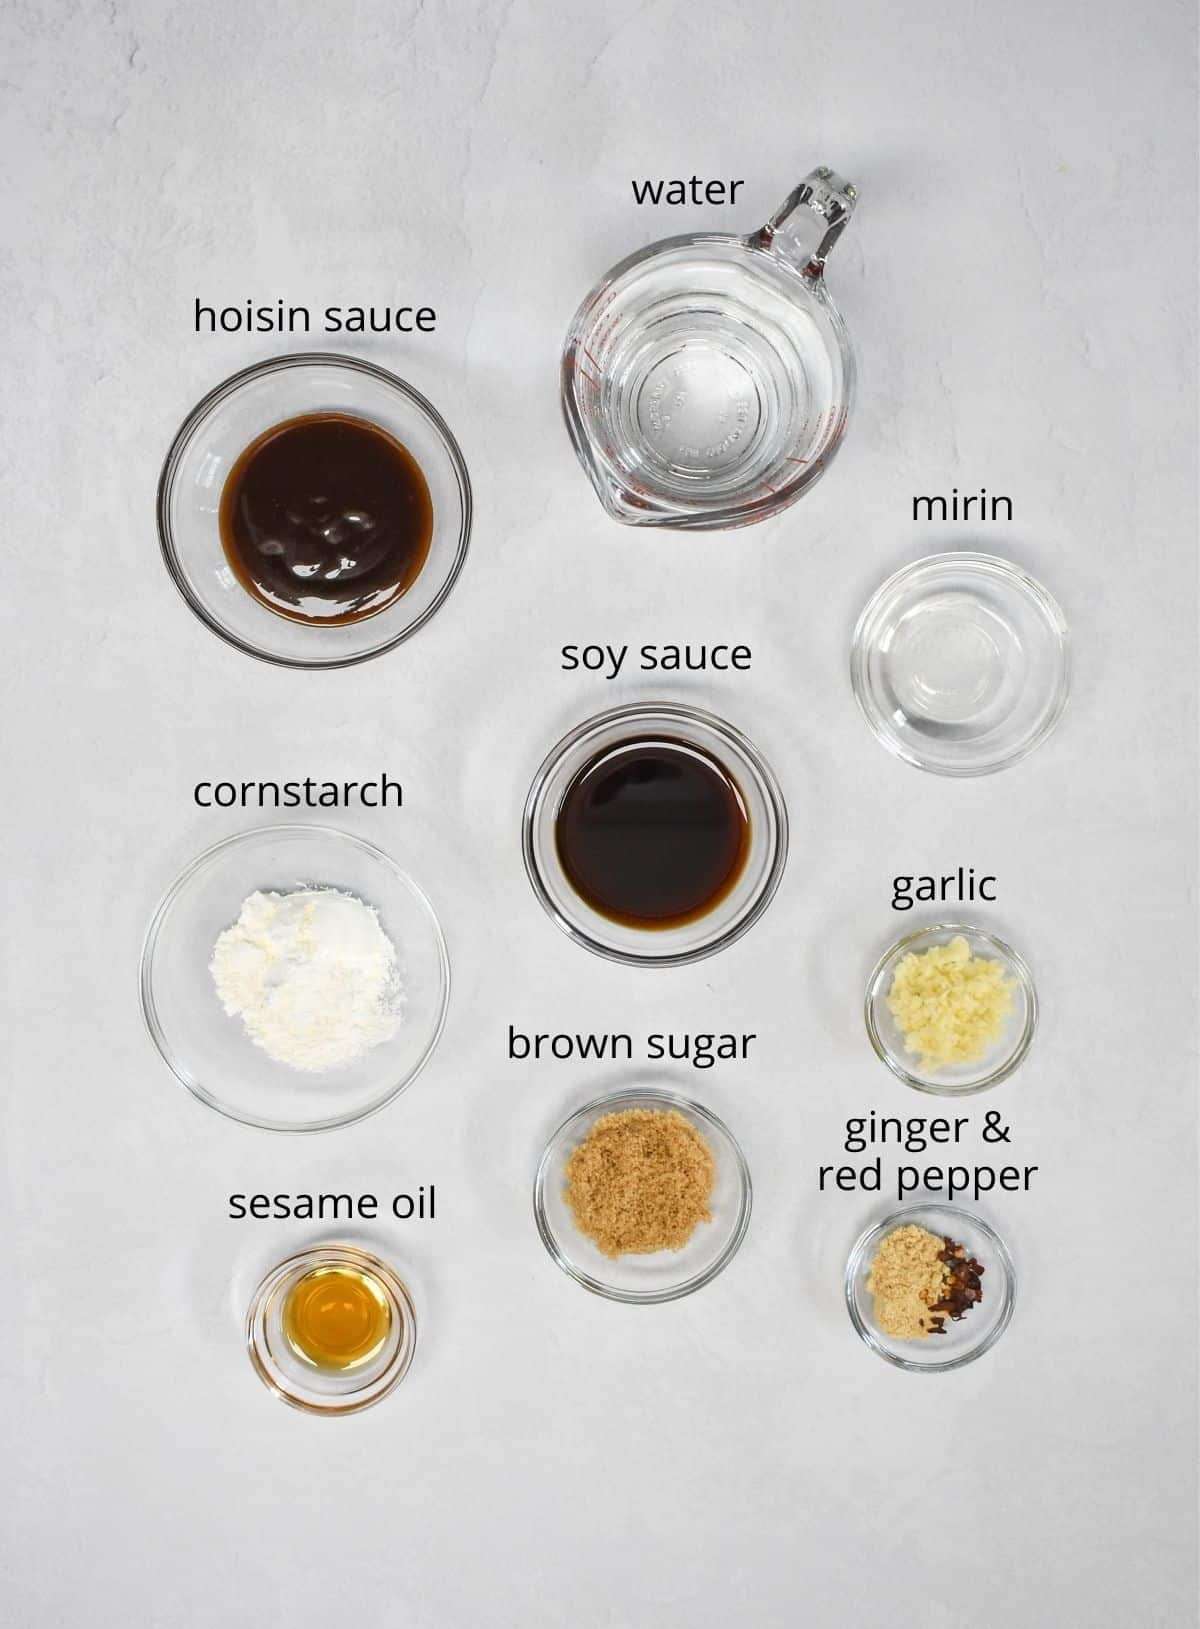 The ingredients for the sauce arranged in glass bowls and set on a white table. Each ingredient has a small label with the name in black letters.